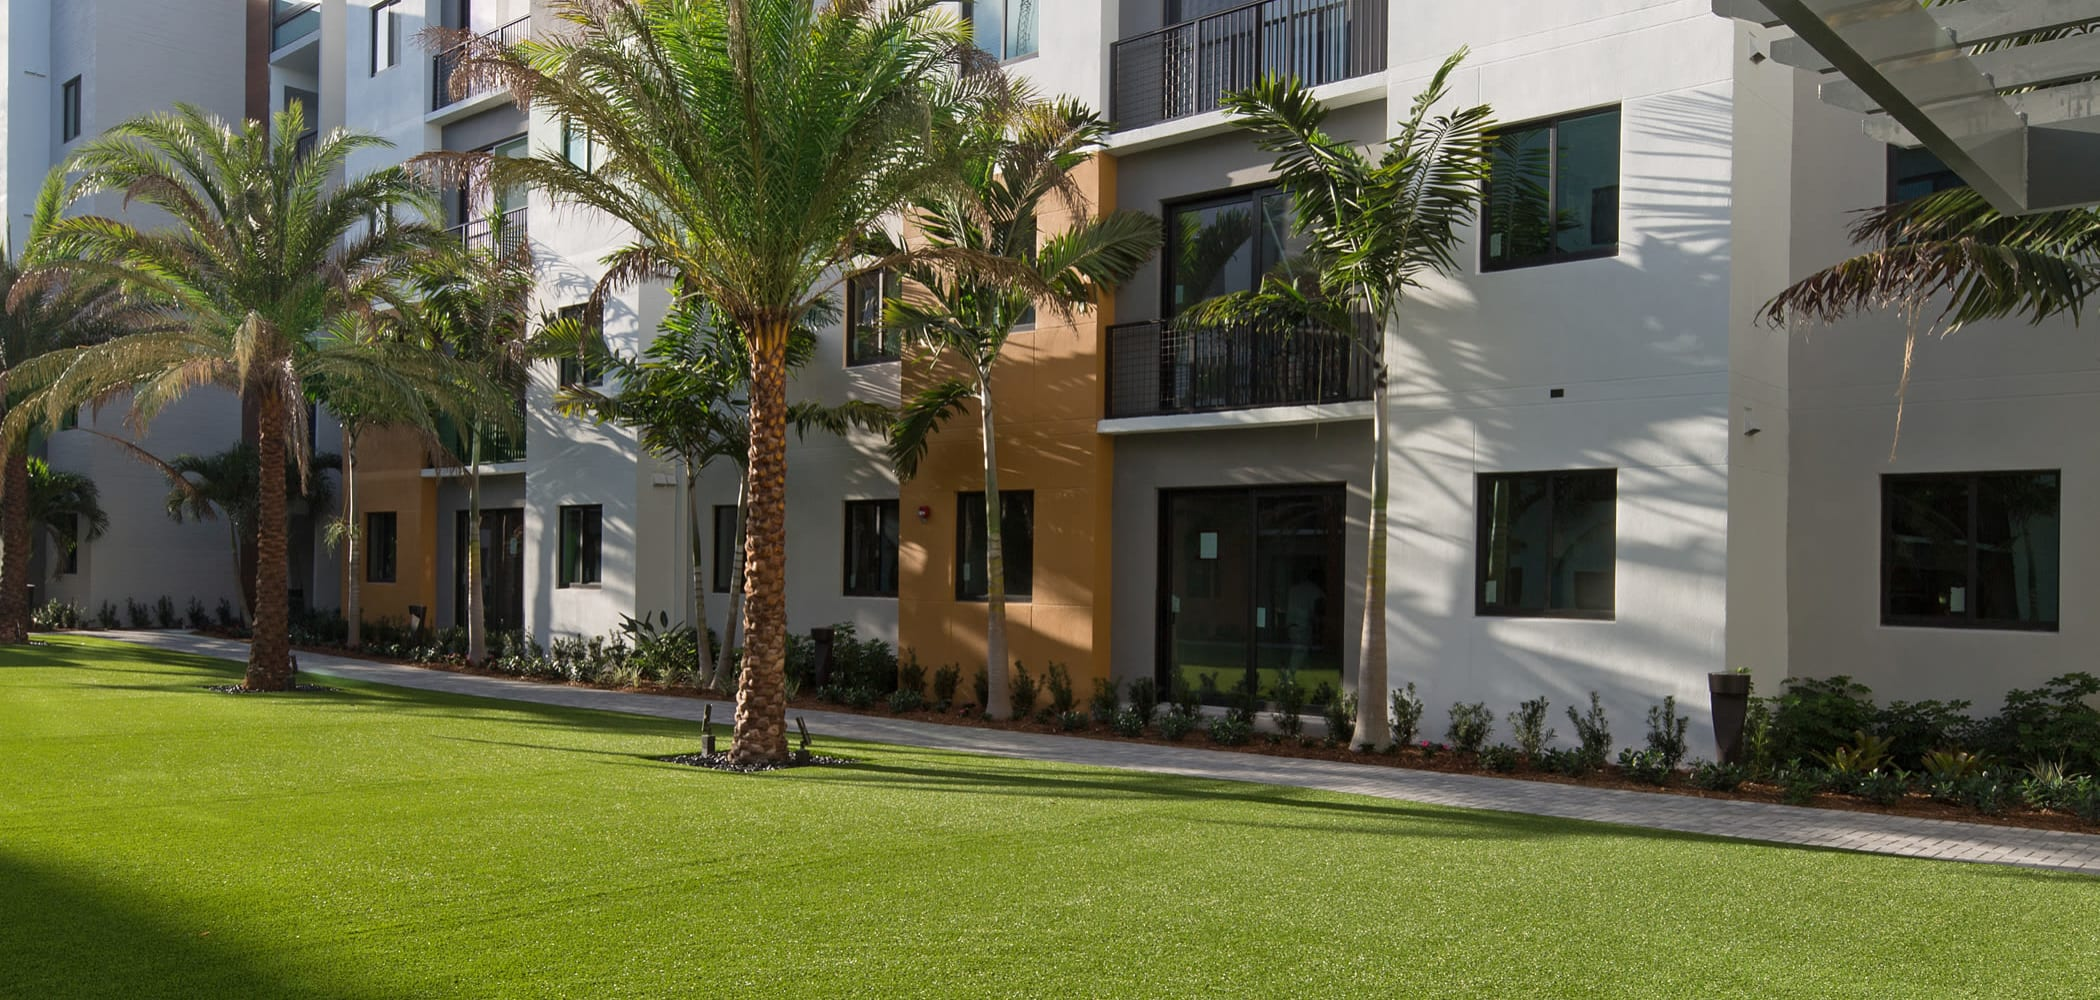 Beautiful lawn for people to walk on at University Park in Boca Raton, Florida